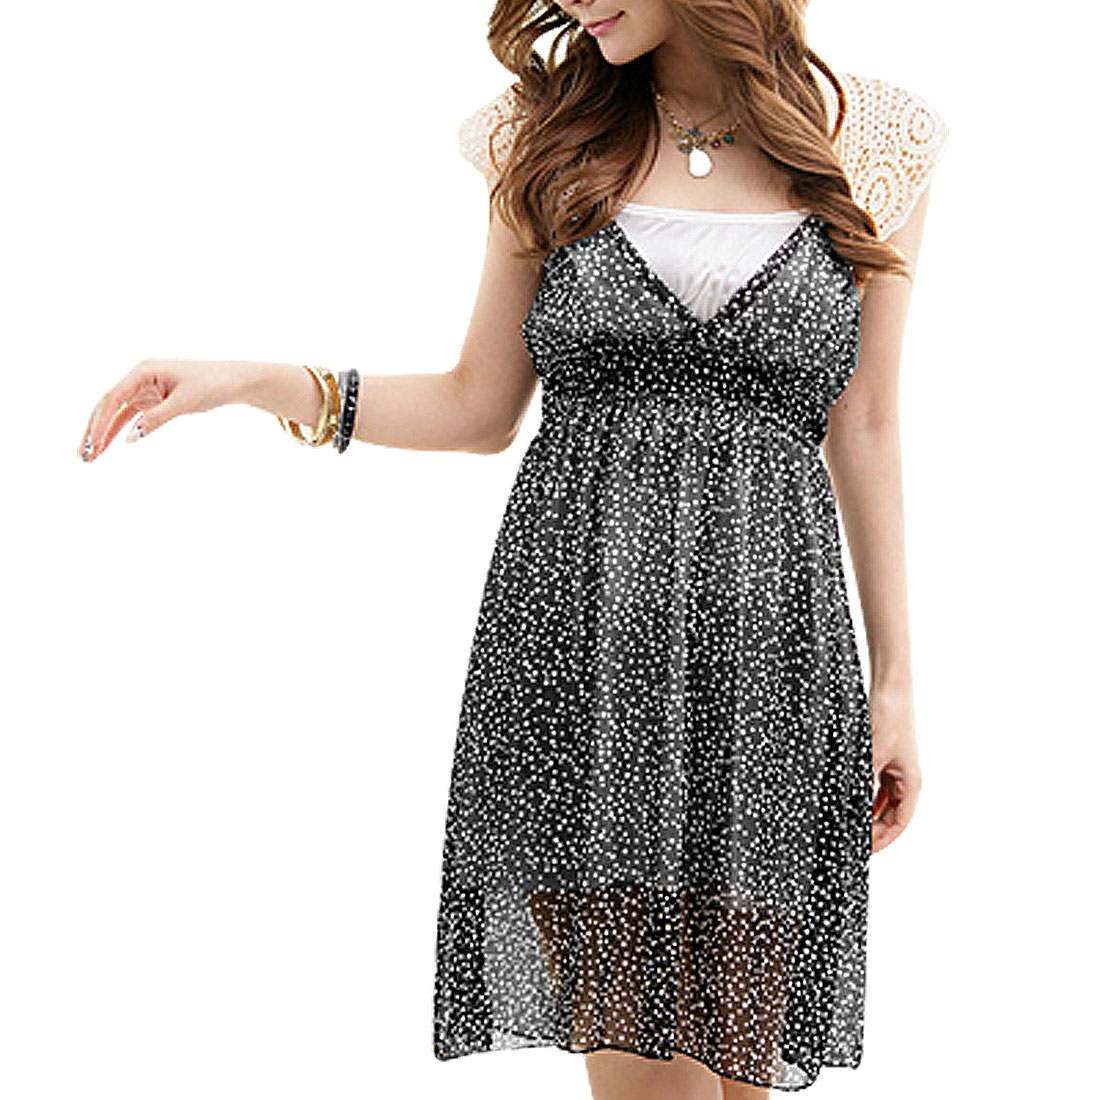 Off White Back Lace Cut Out Black XS Dress for Ladies